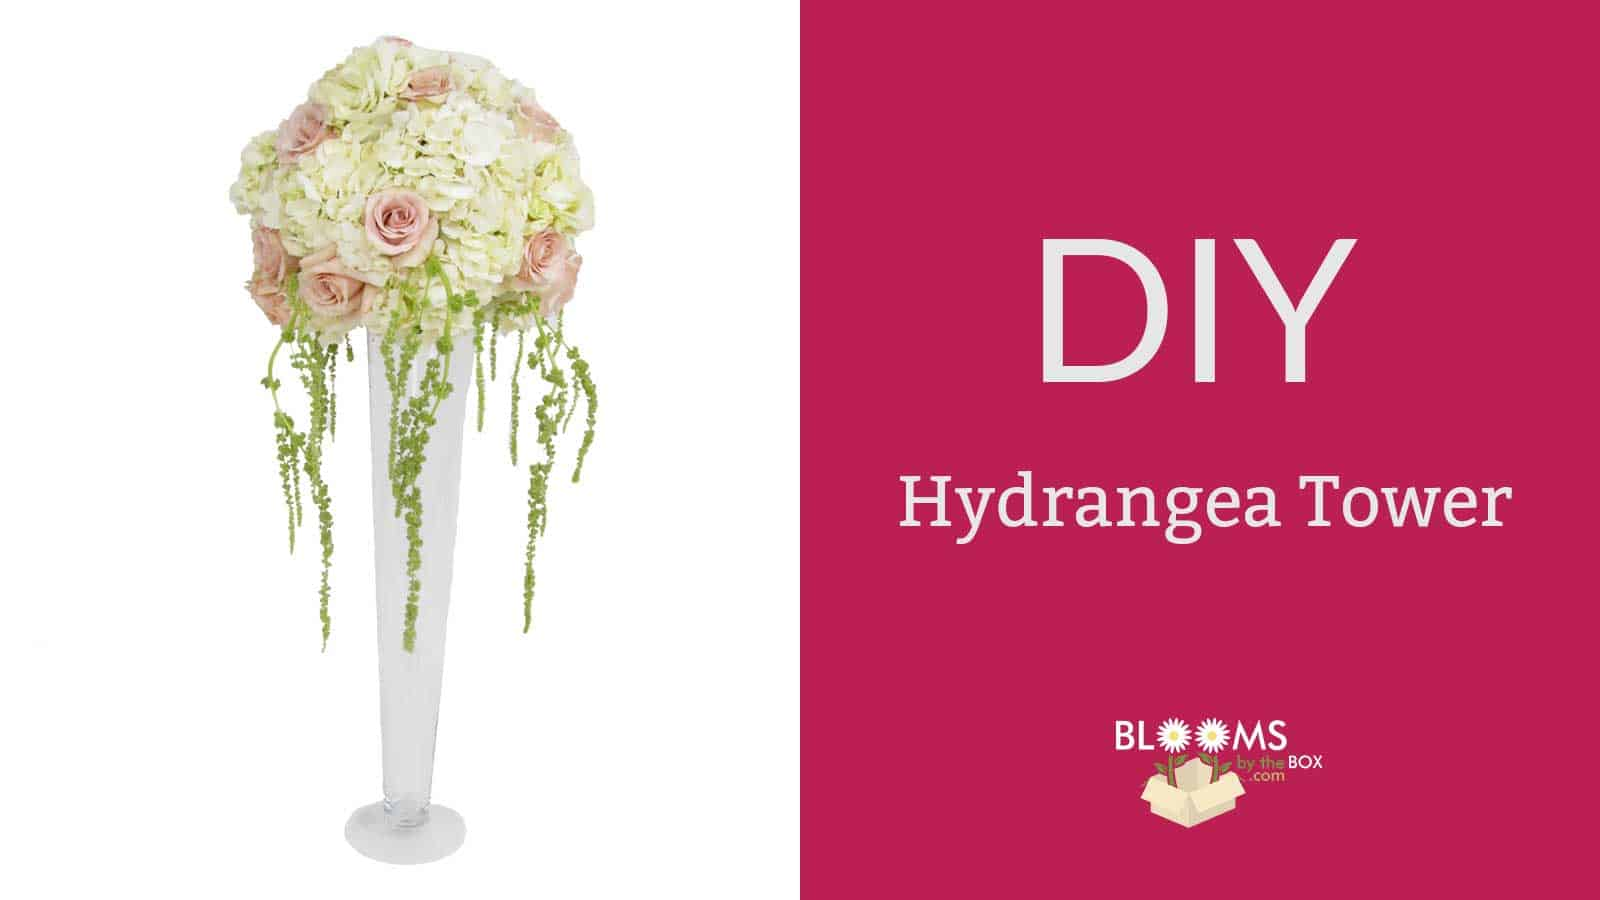 Diy hydrangea tower centerpiece budget friendly beauty